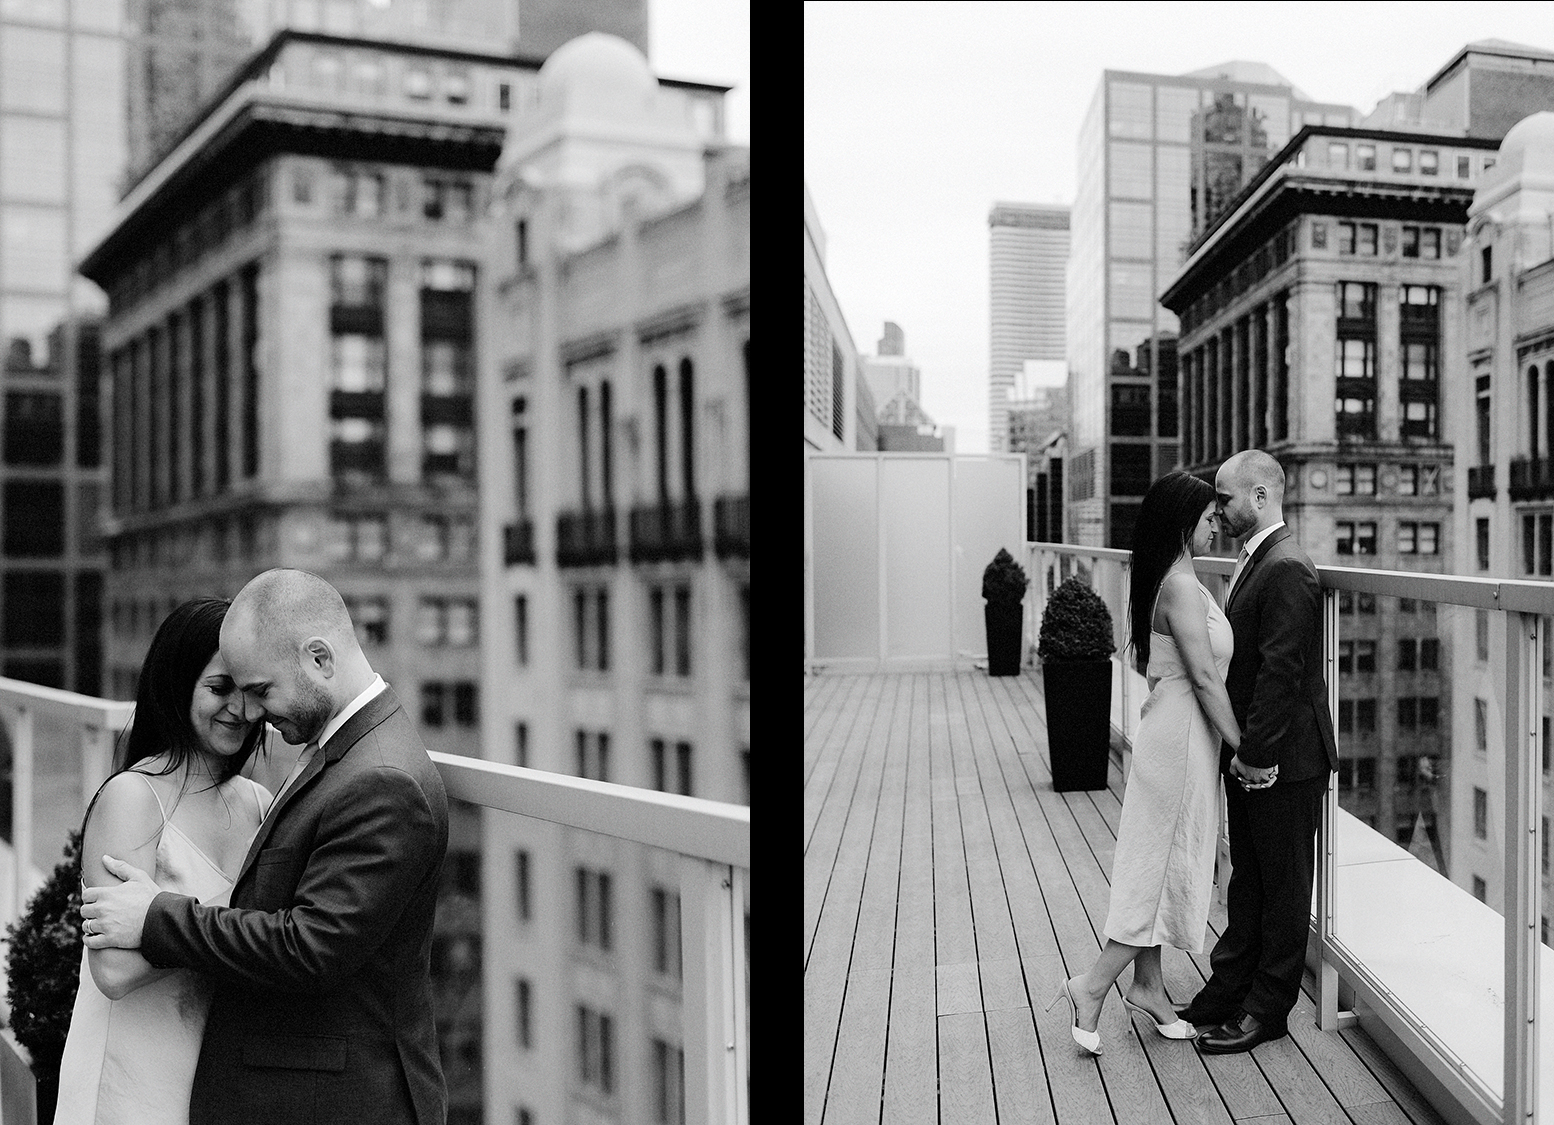 59-Best-Wedding-Photographers-in-Toronto-3B-Photography-Editorial-Fine-Art-Analog-Wedding-Photography-Toronto-Skyline-Rooftop-Views-3B-Photography-spread-1.jpg